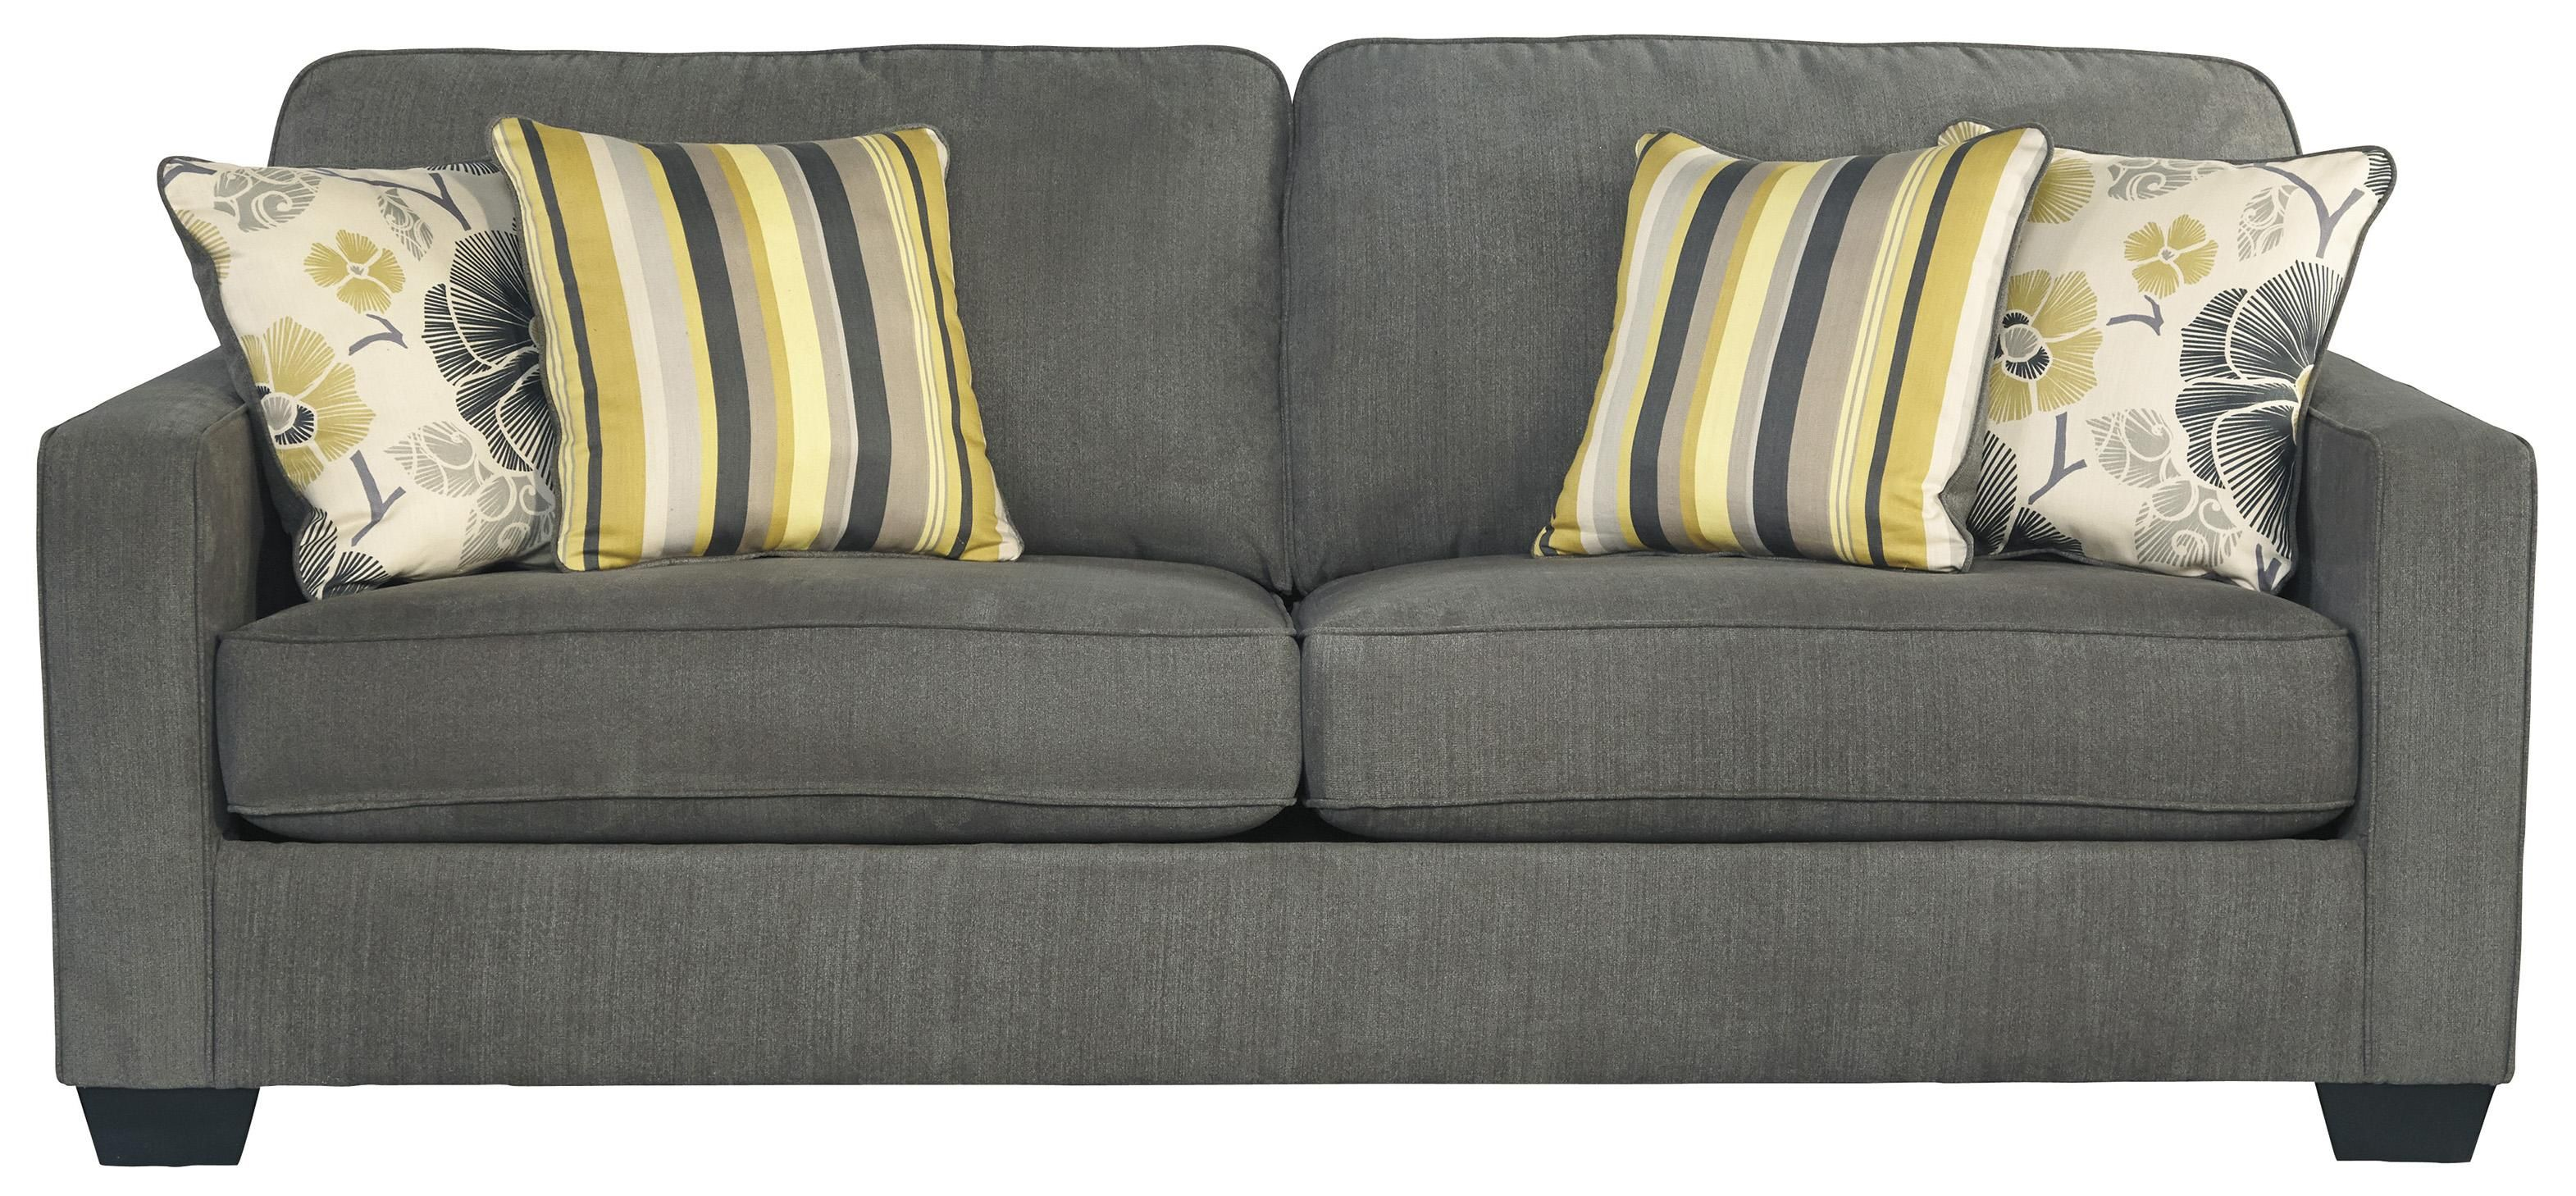 safia slate queen sofa sleeper with track arms u0026 2 loose seat cushions by benchcraft